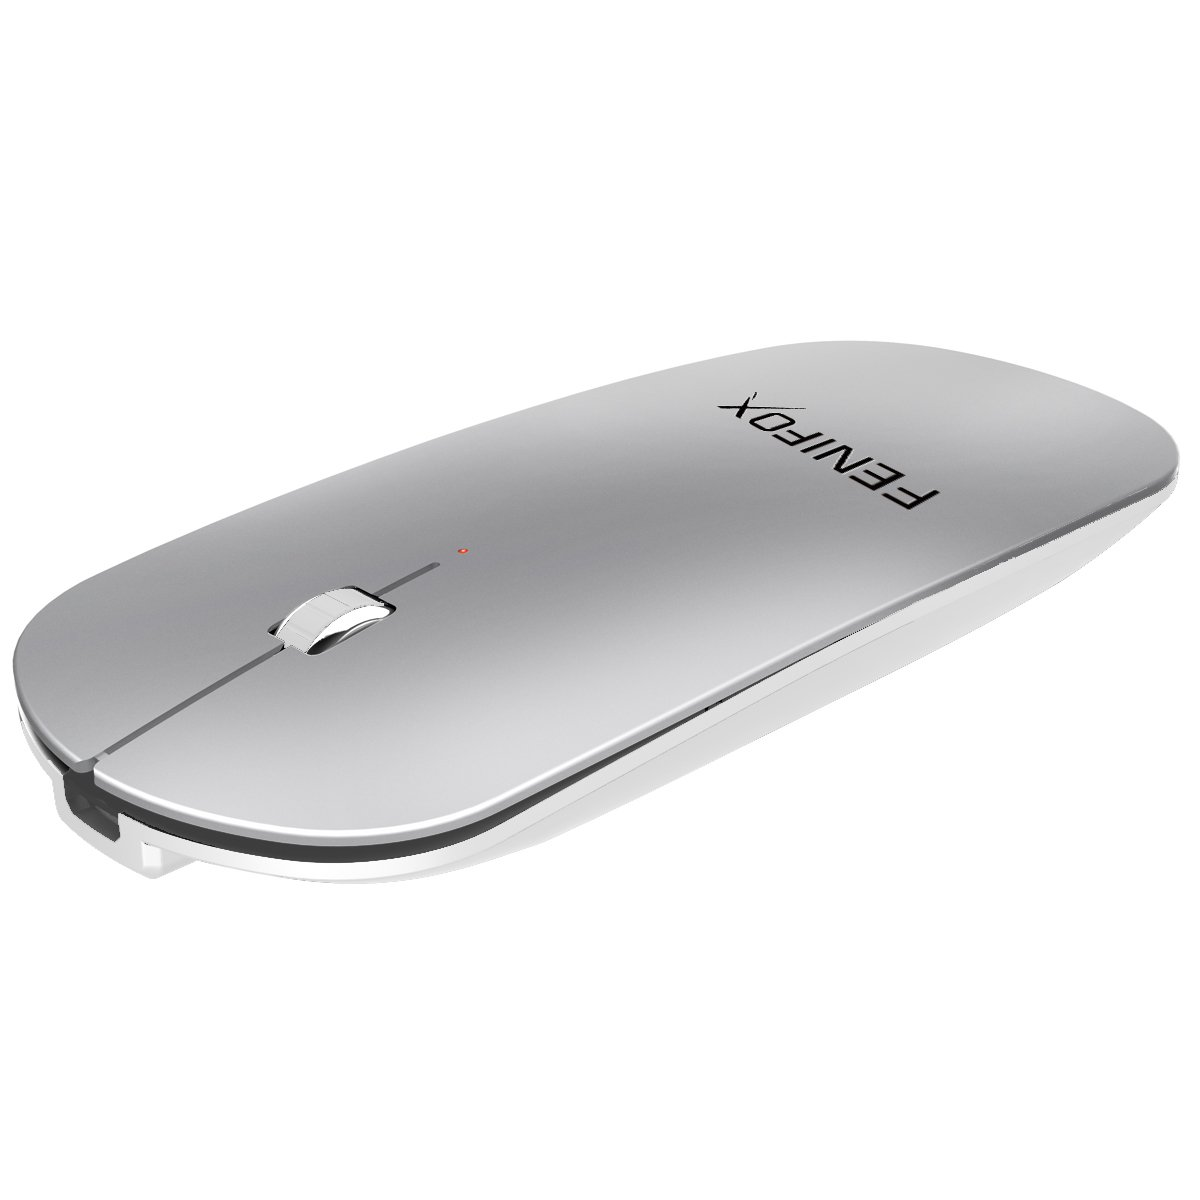 Bluetooth Mouse, FENIFOX Slim Mini Portable Flat Travel Wireless Mouse Whisper Quiet Mobile Optional Mice Rechargeable Ultra-Thin Laptop,Tablet,MacBook,Notebook,PC (Silver White)